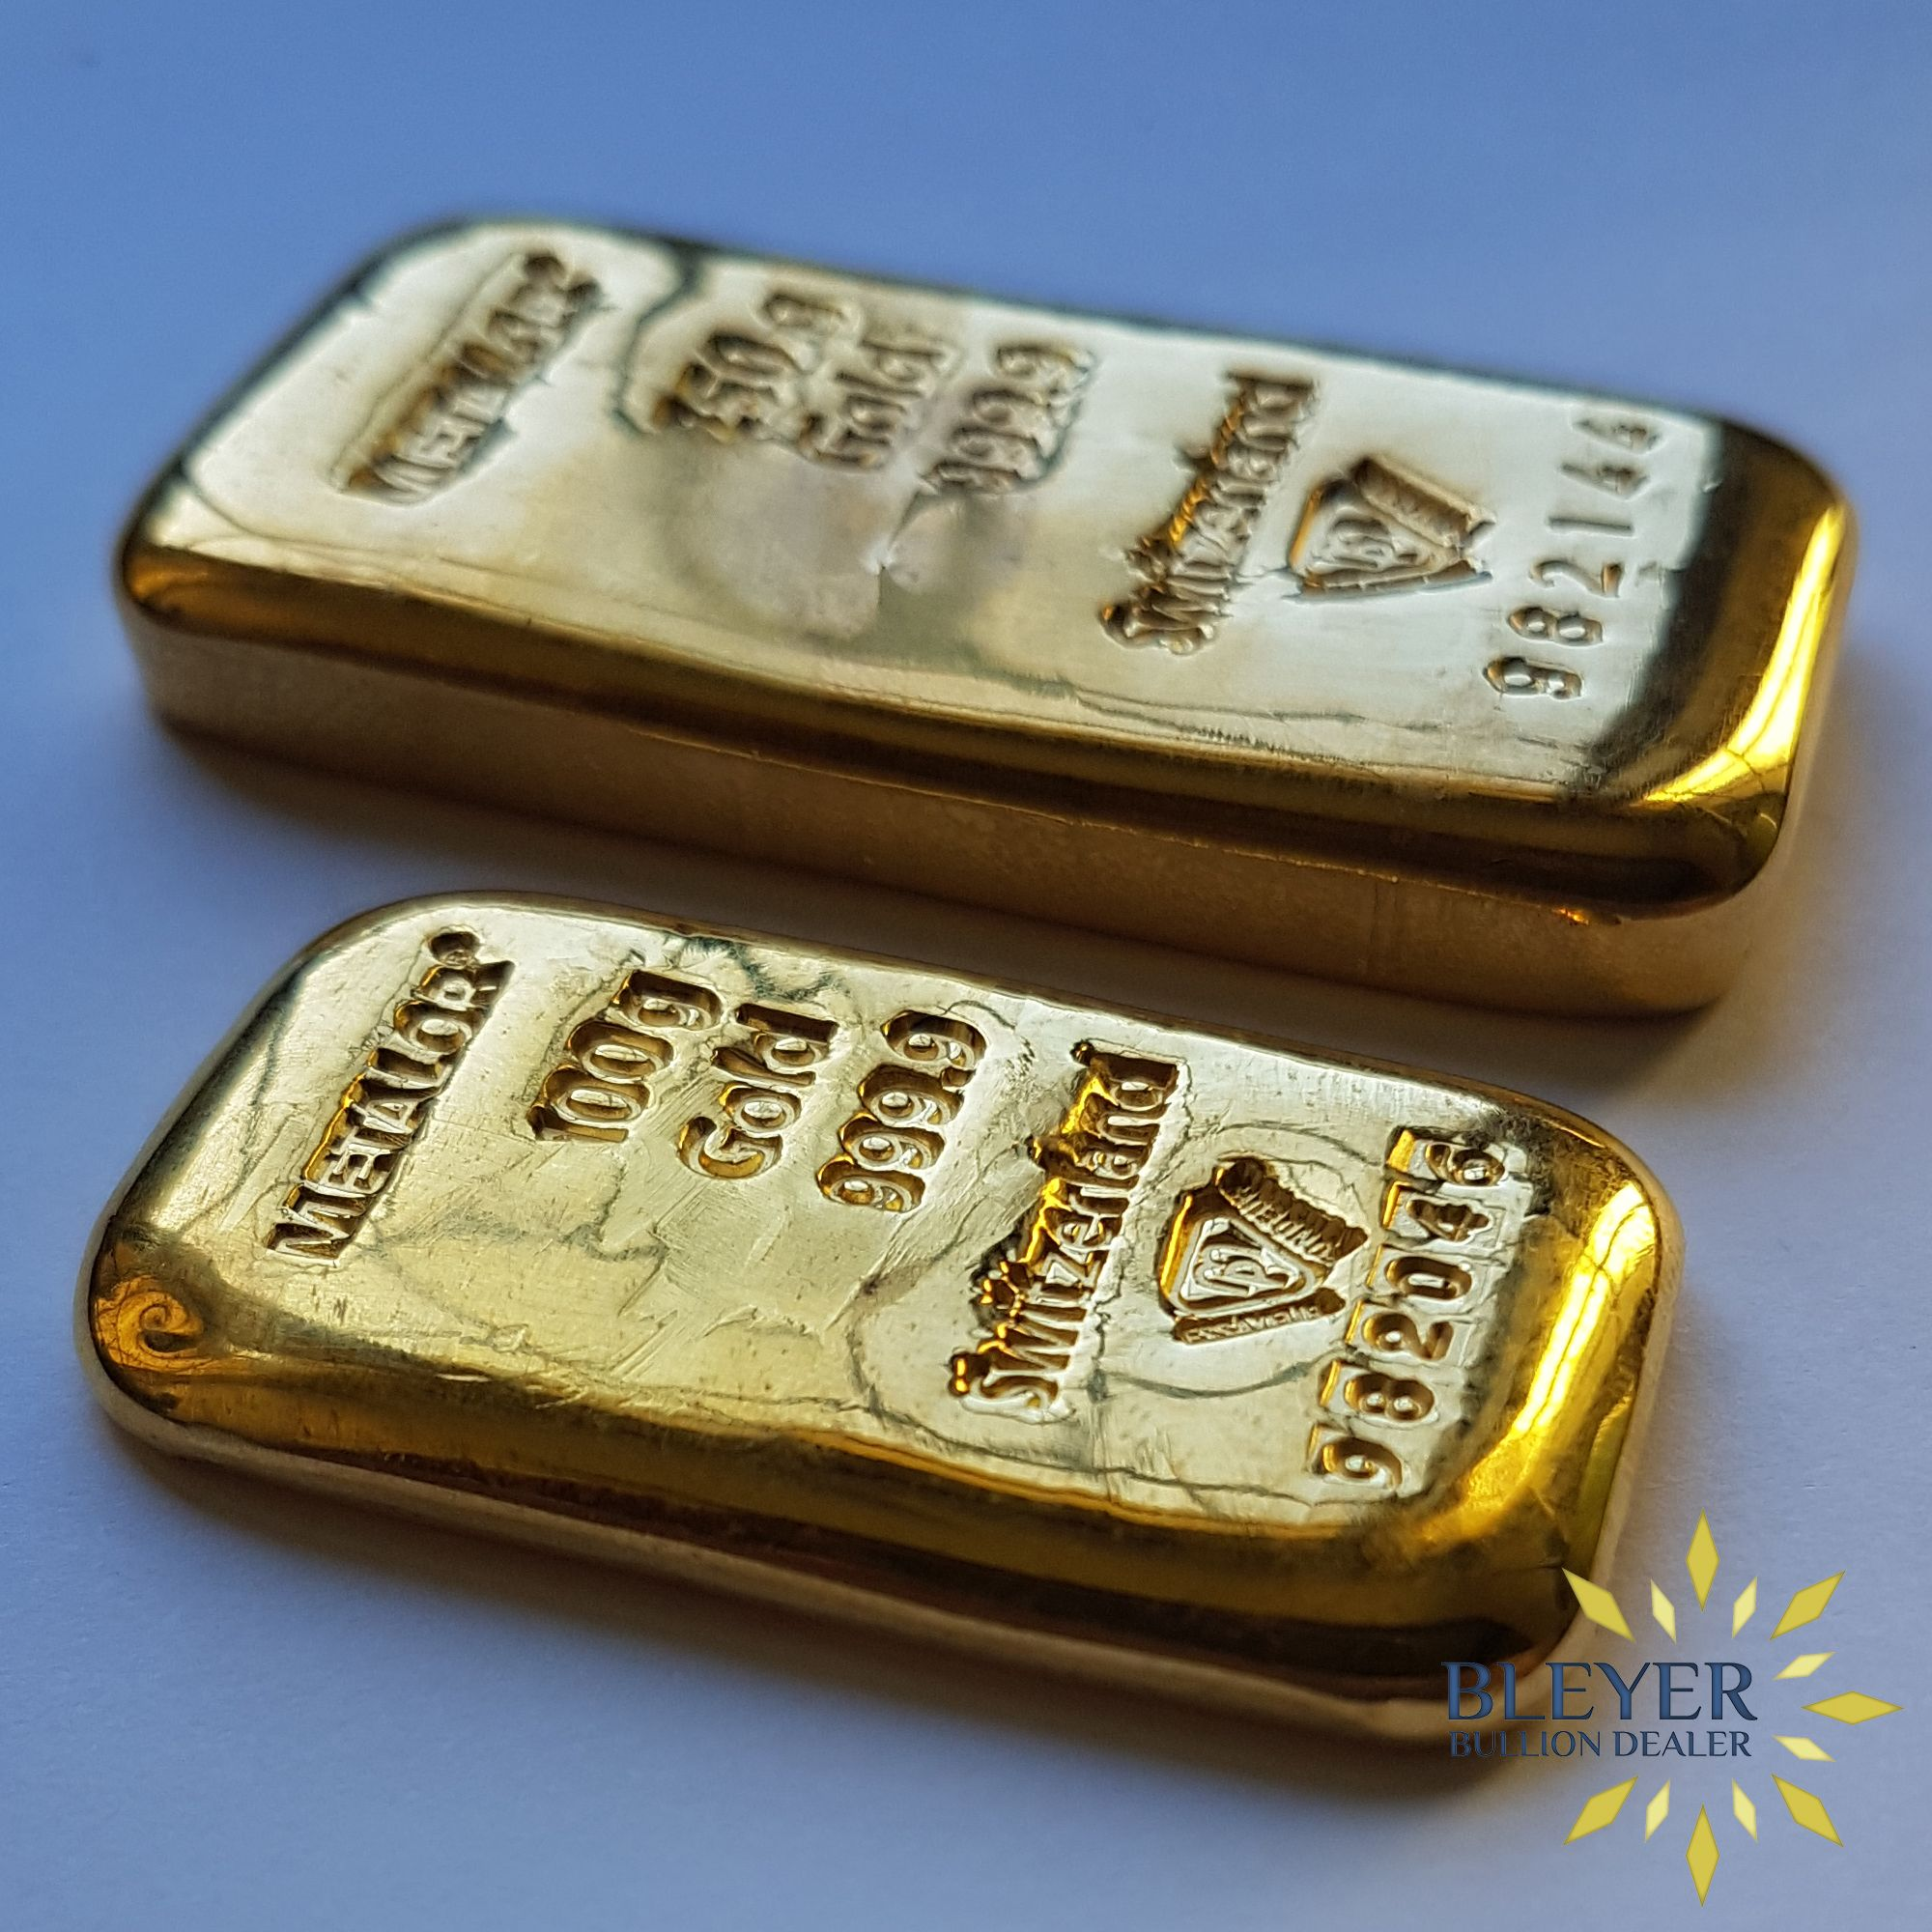 Bars Sizes Range From 1 Gram To 400 Troy Ounce Just Under 12 5kg Buy With Confidence Gold Bullion Bars Gold Bar Gold Bullion